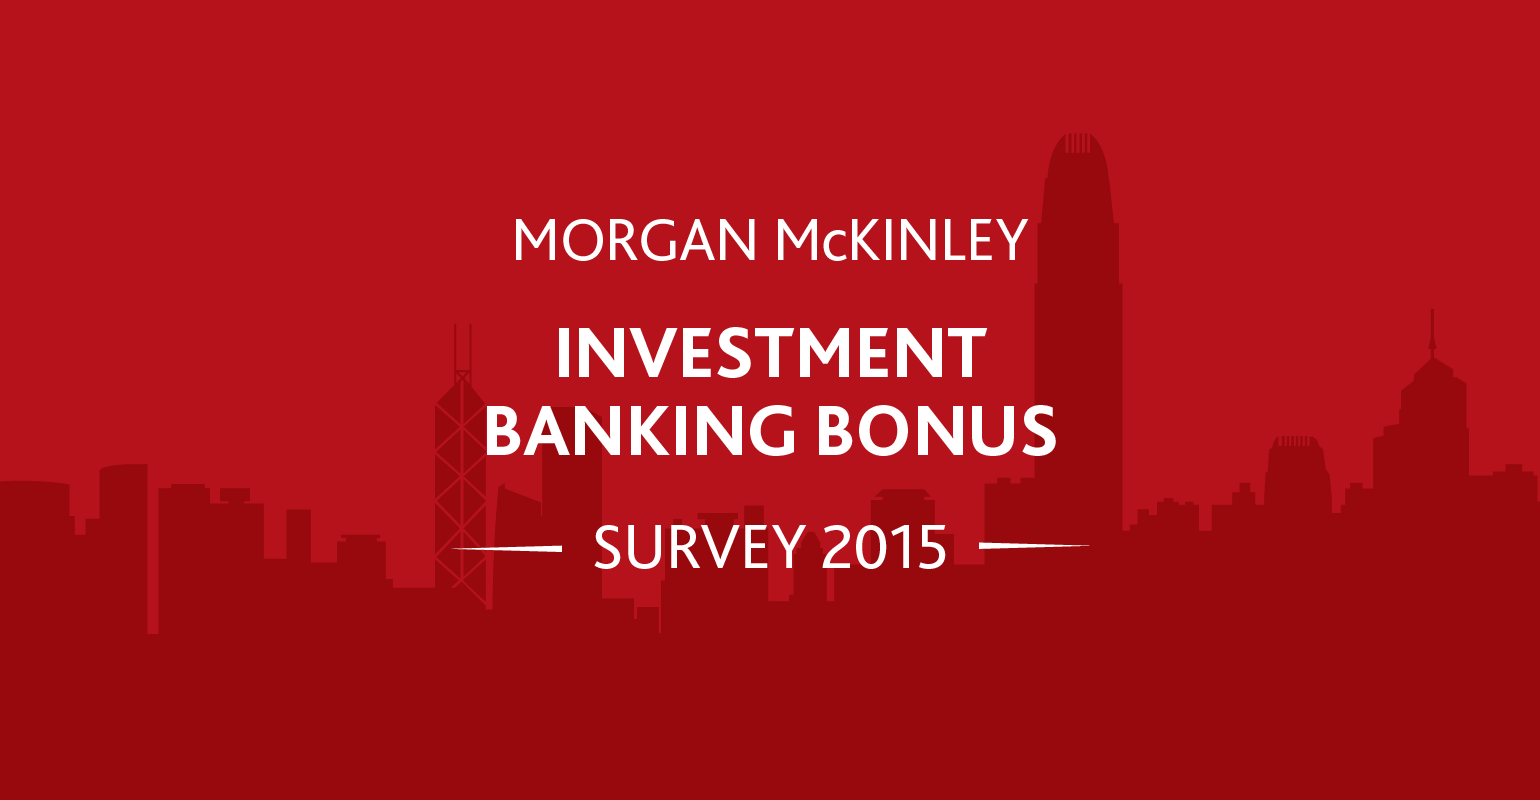 Investment Banking Bonus Survey